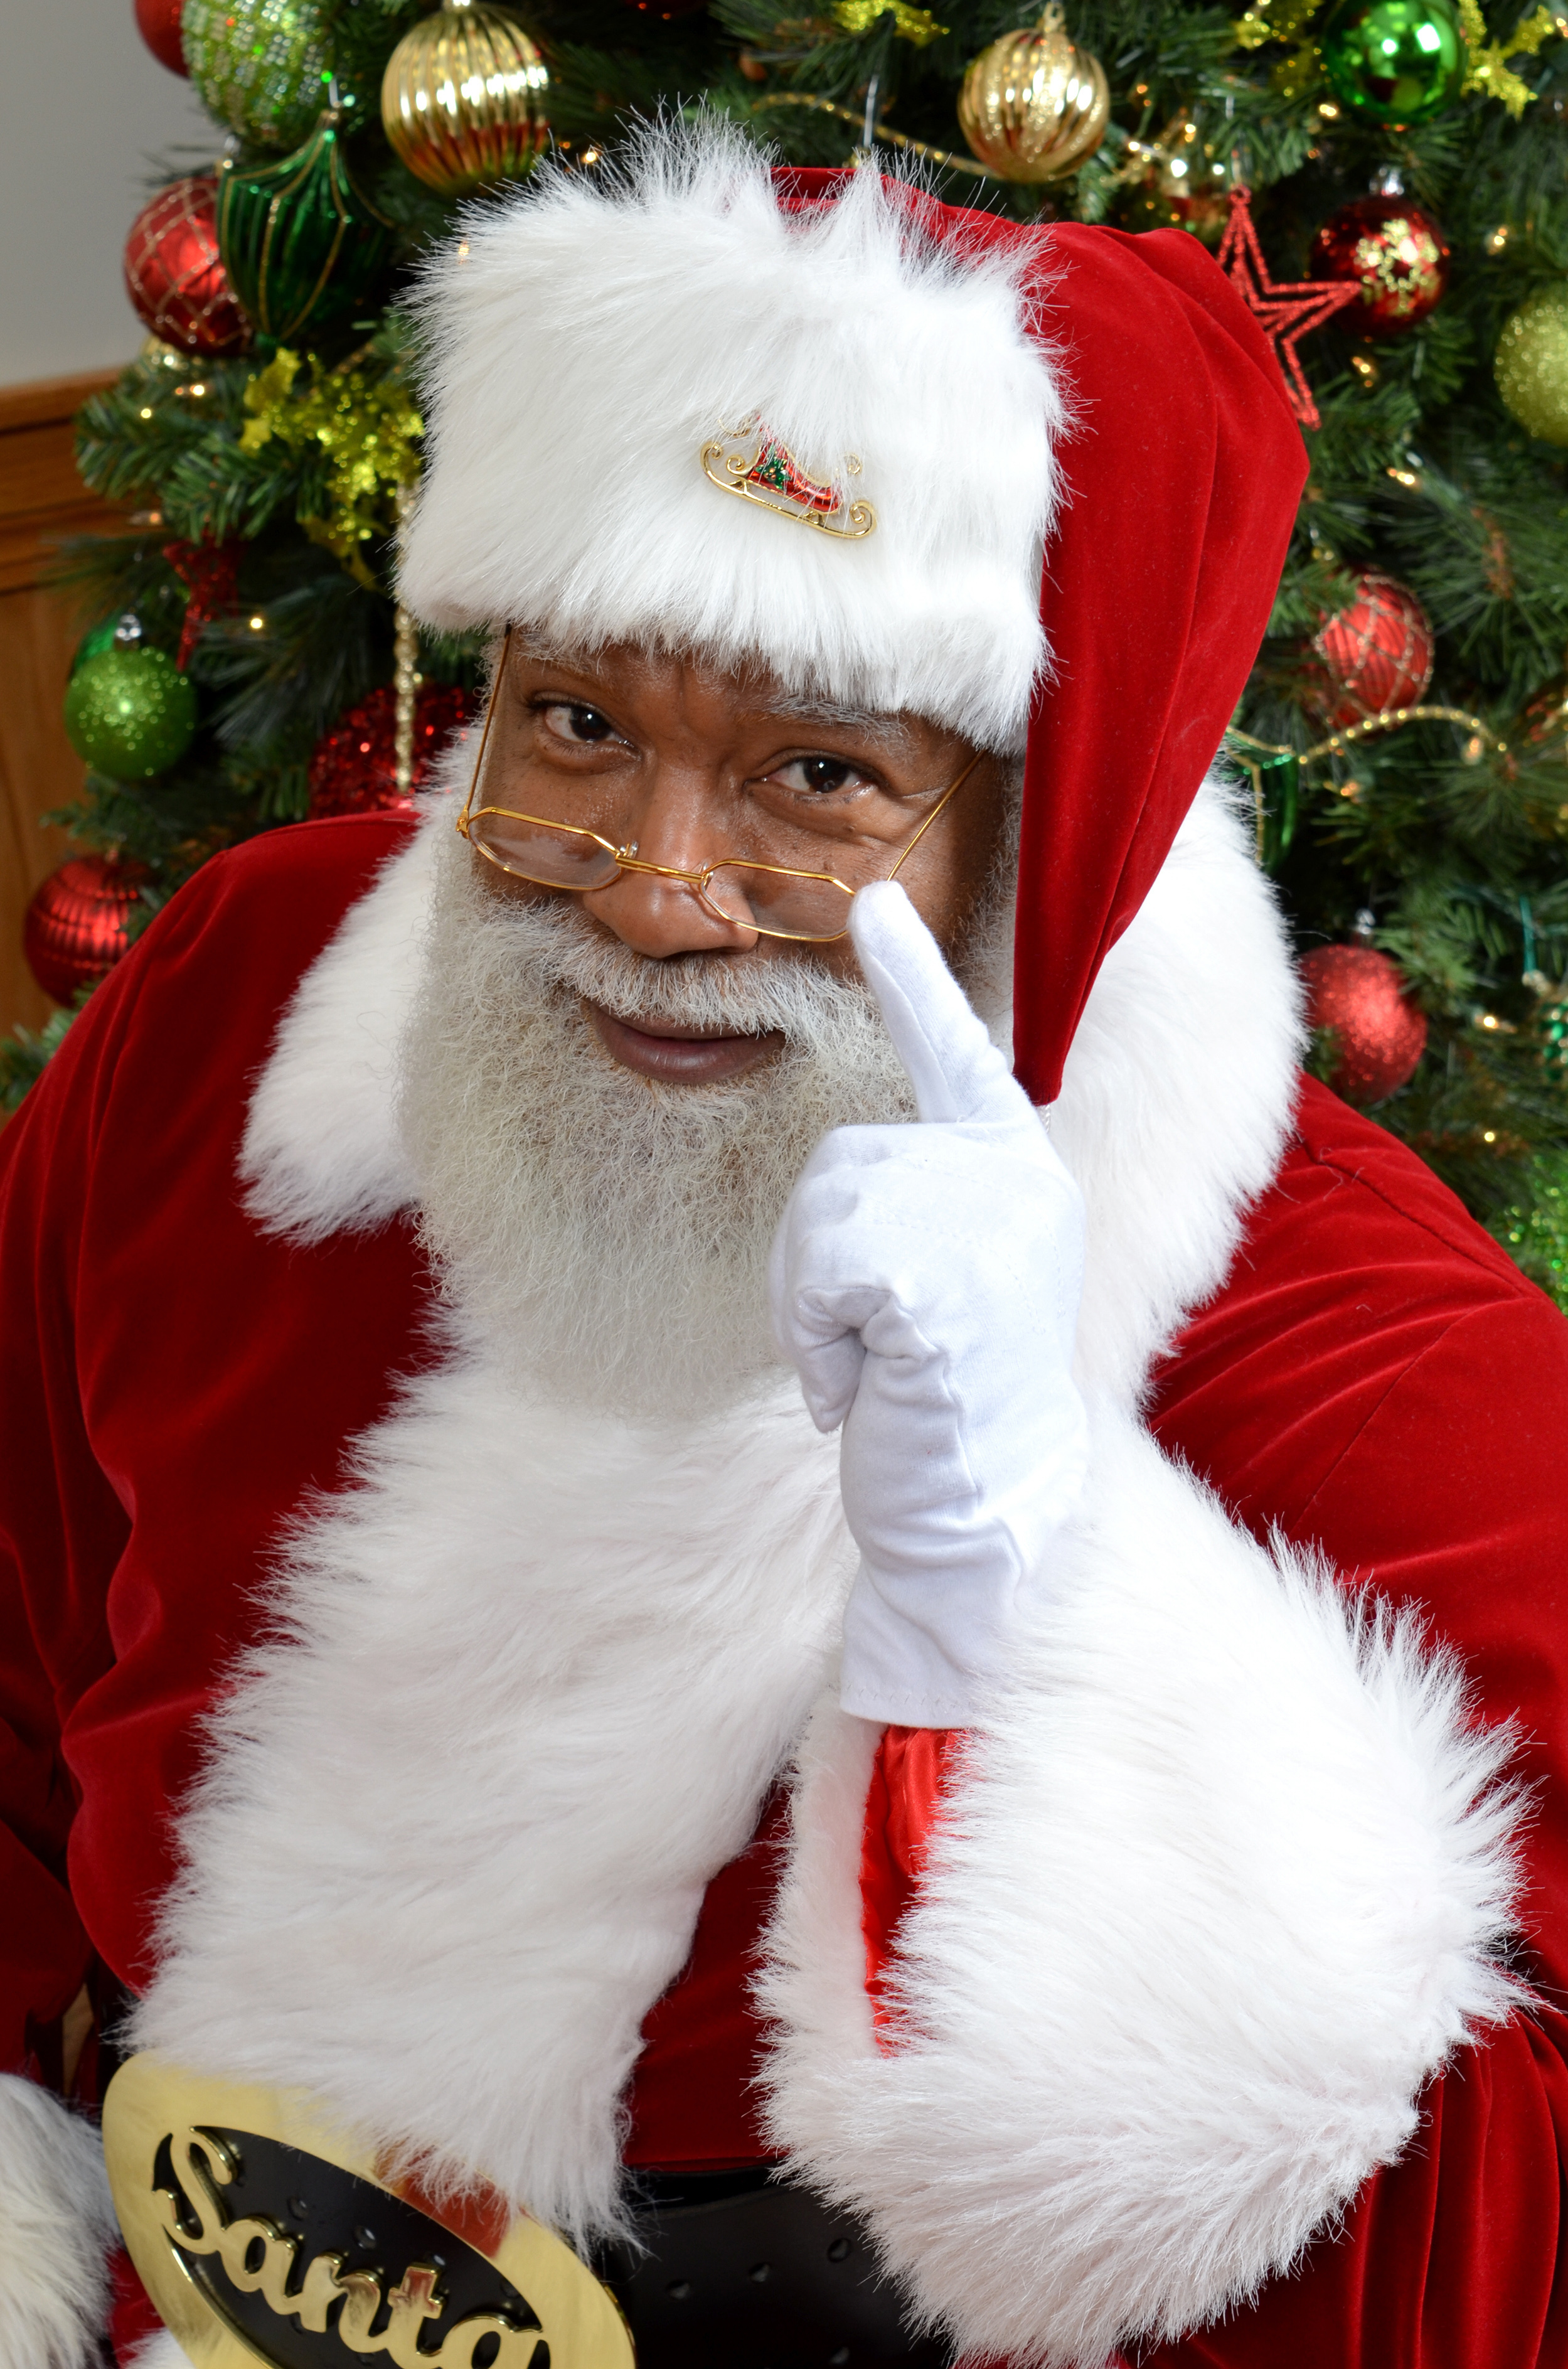 Black Santa Claus Is A Hit At Mall Of America But Faces An Online Backlash Kut